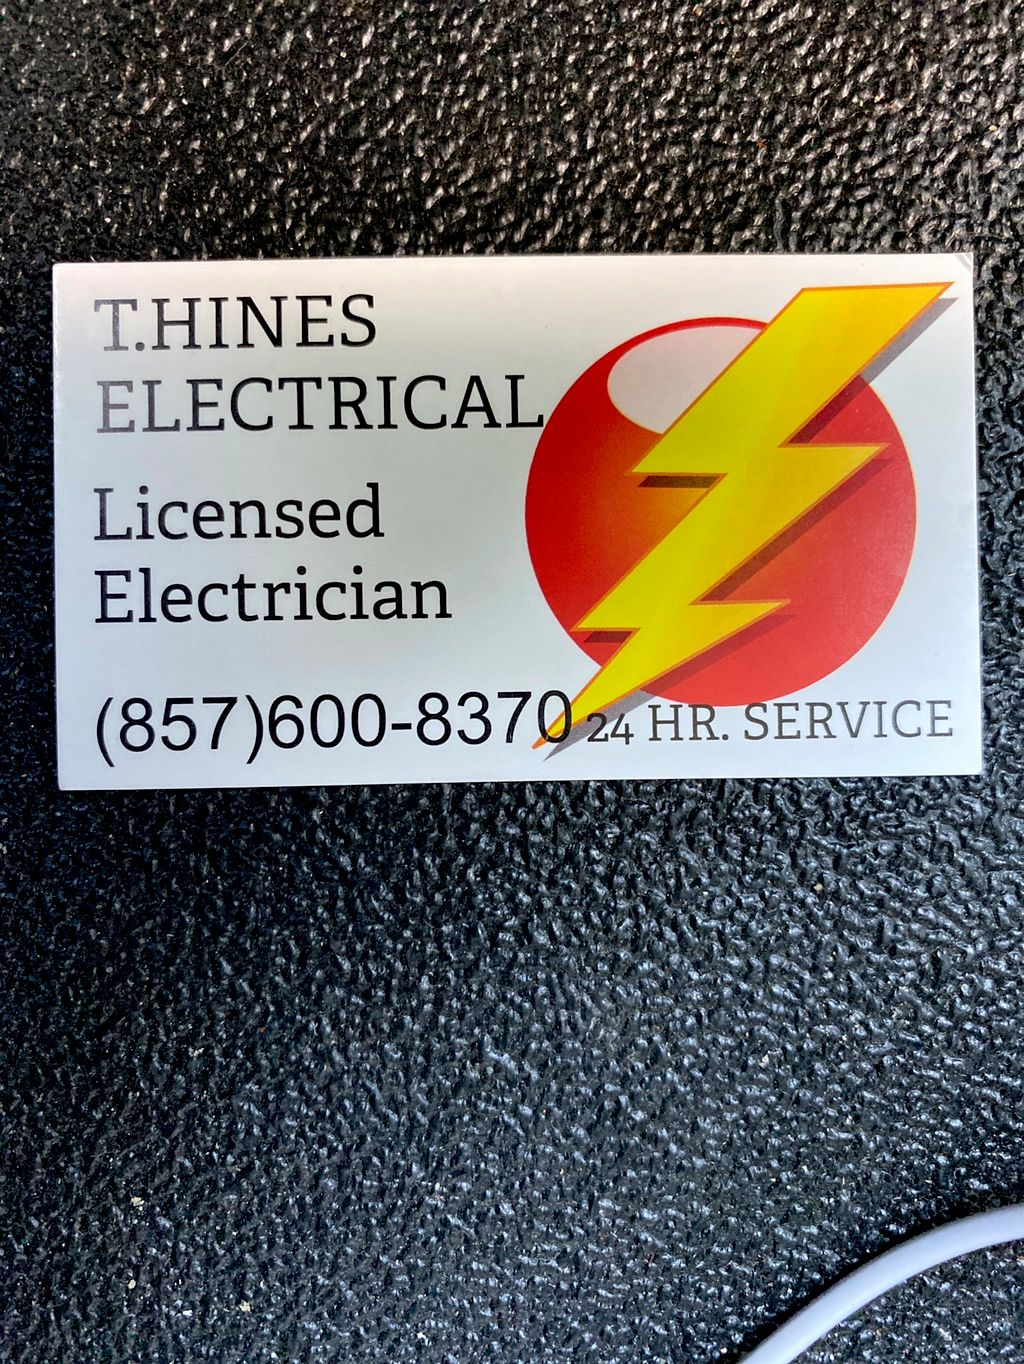 T. Hines Electric